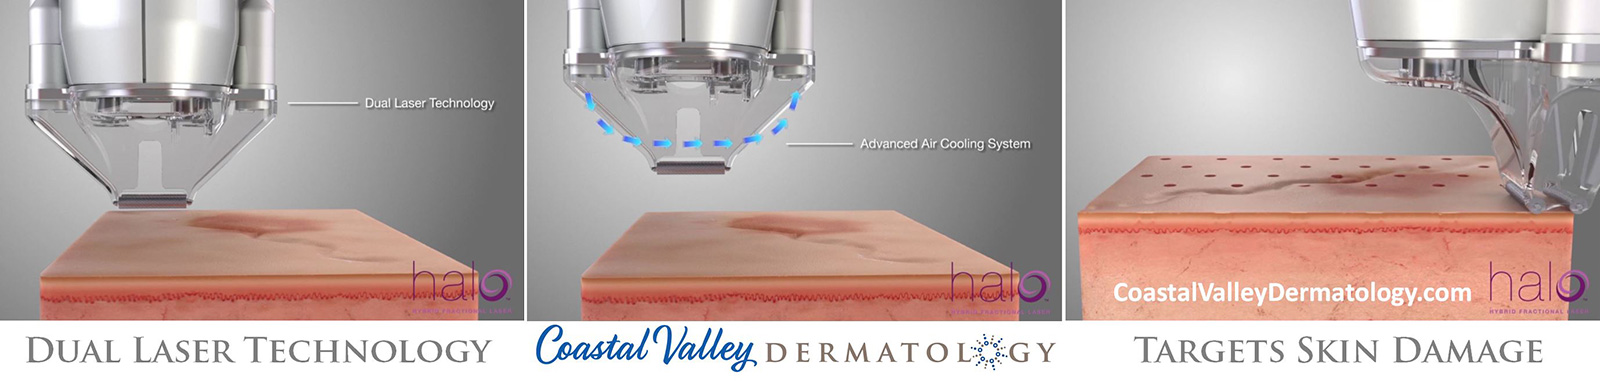 coastal-valley-dermatology-carmel-halo-dual-laser-technology-photo